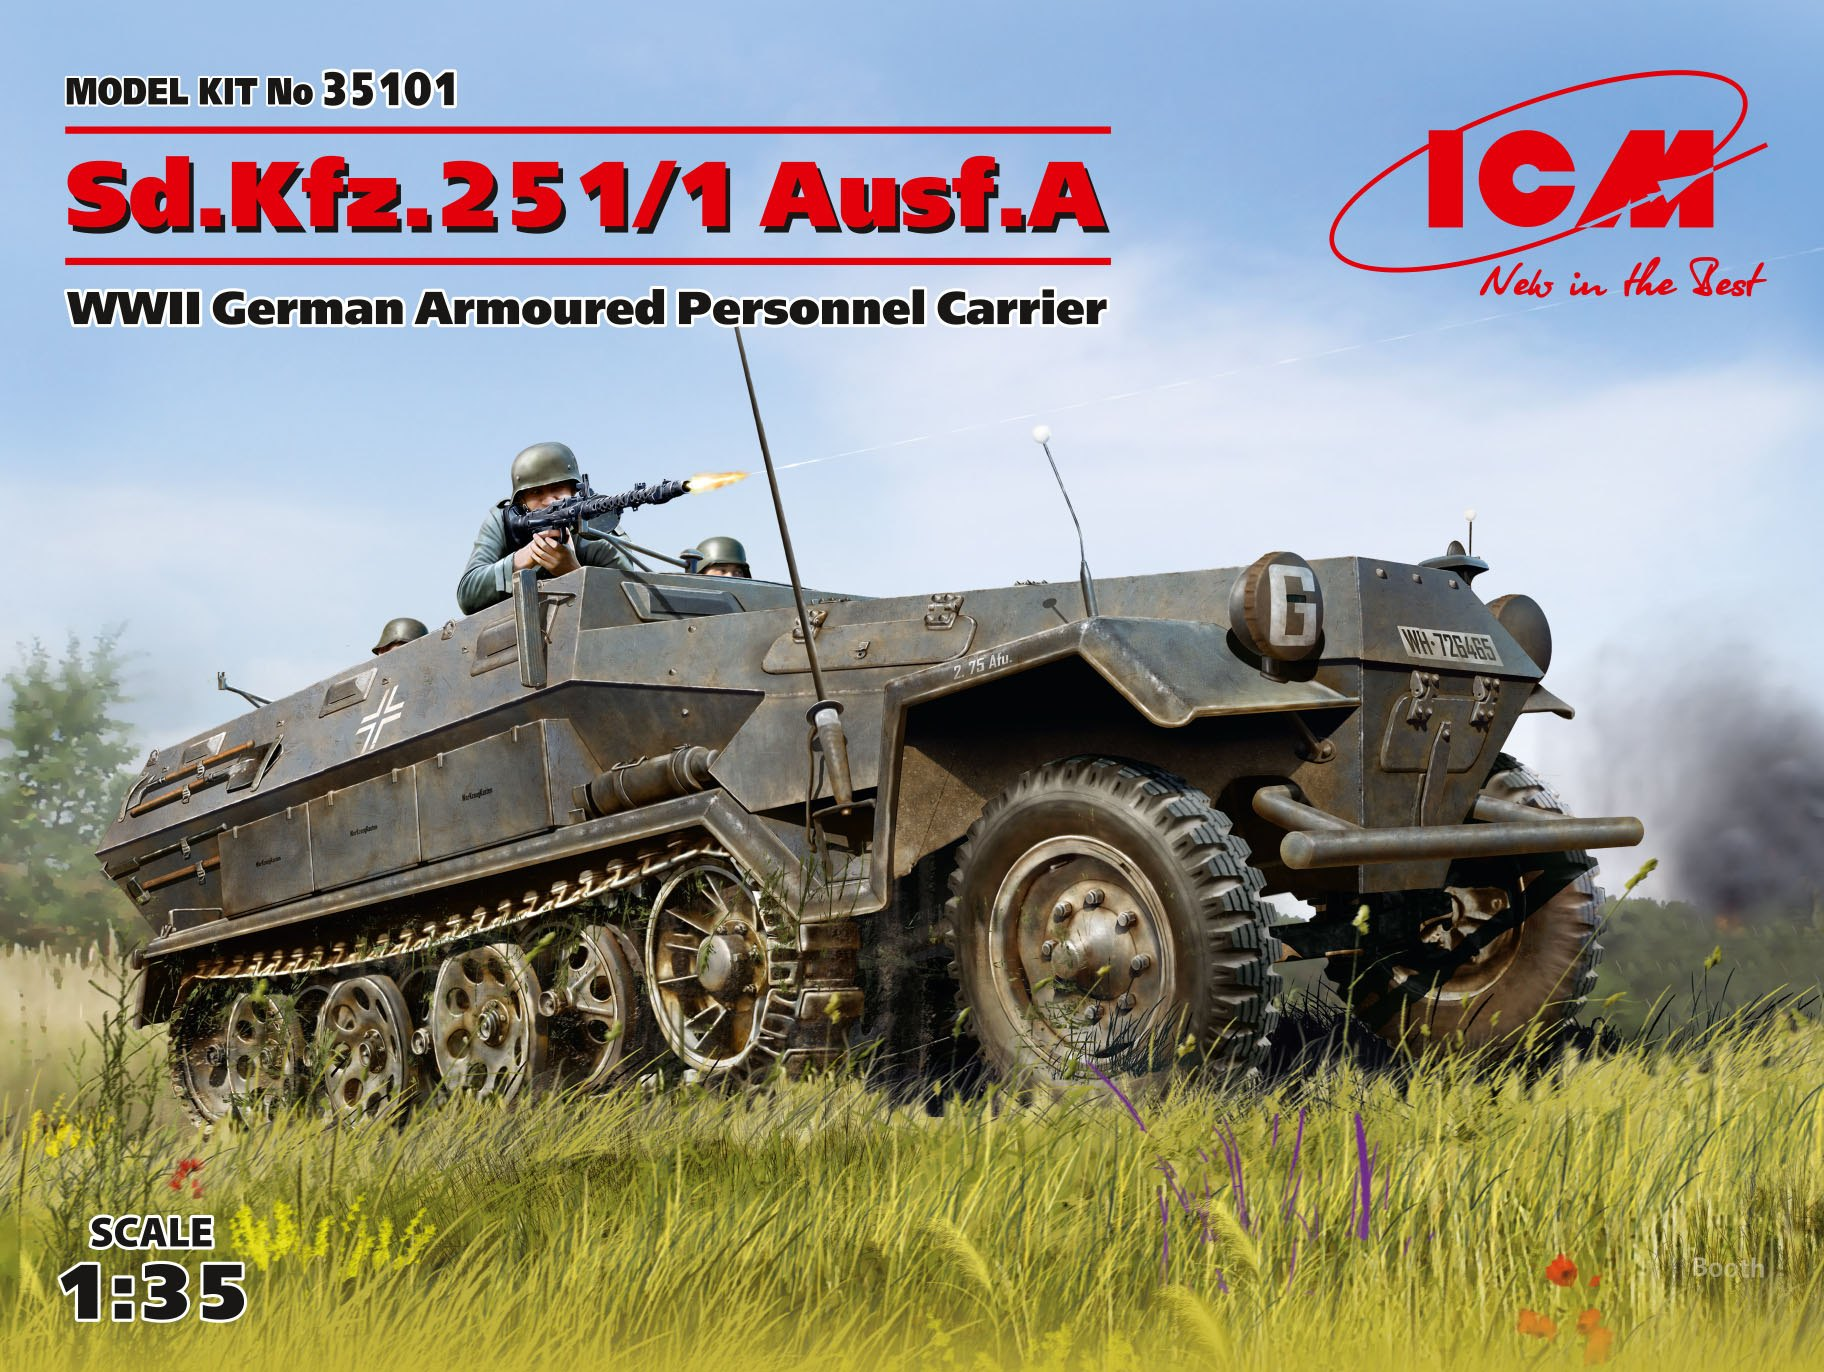 ICM Sd.Kfz.251/1 Ausf.A, WWII German Armoured Personnel Carrier